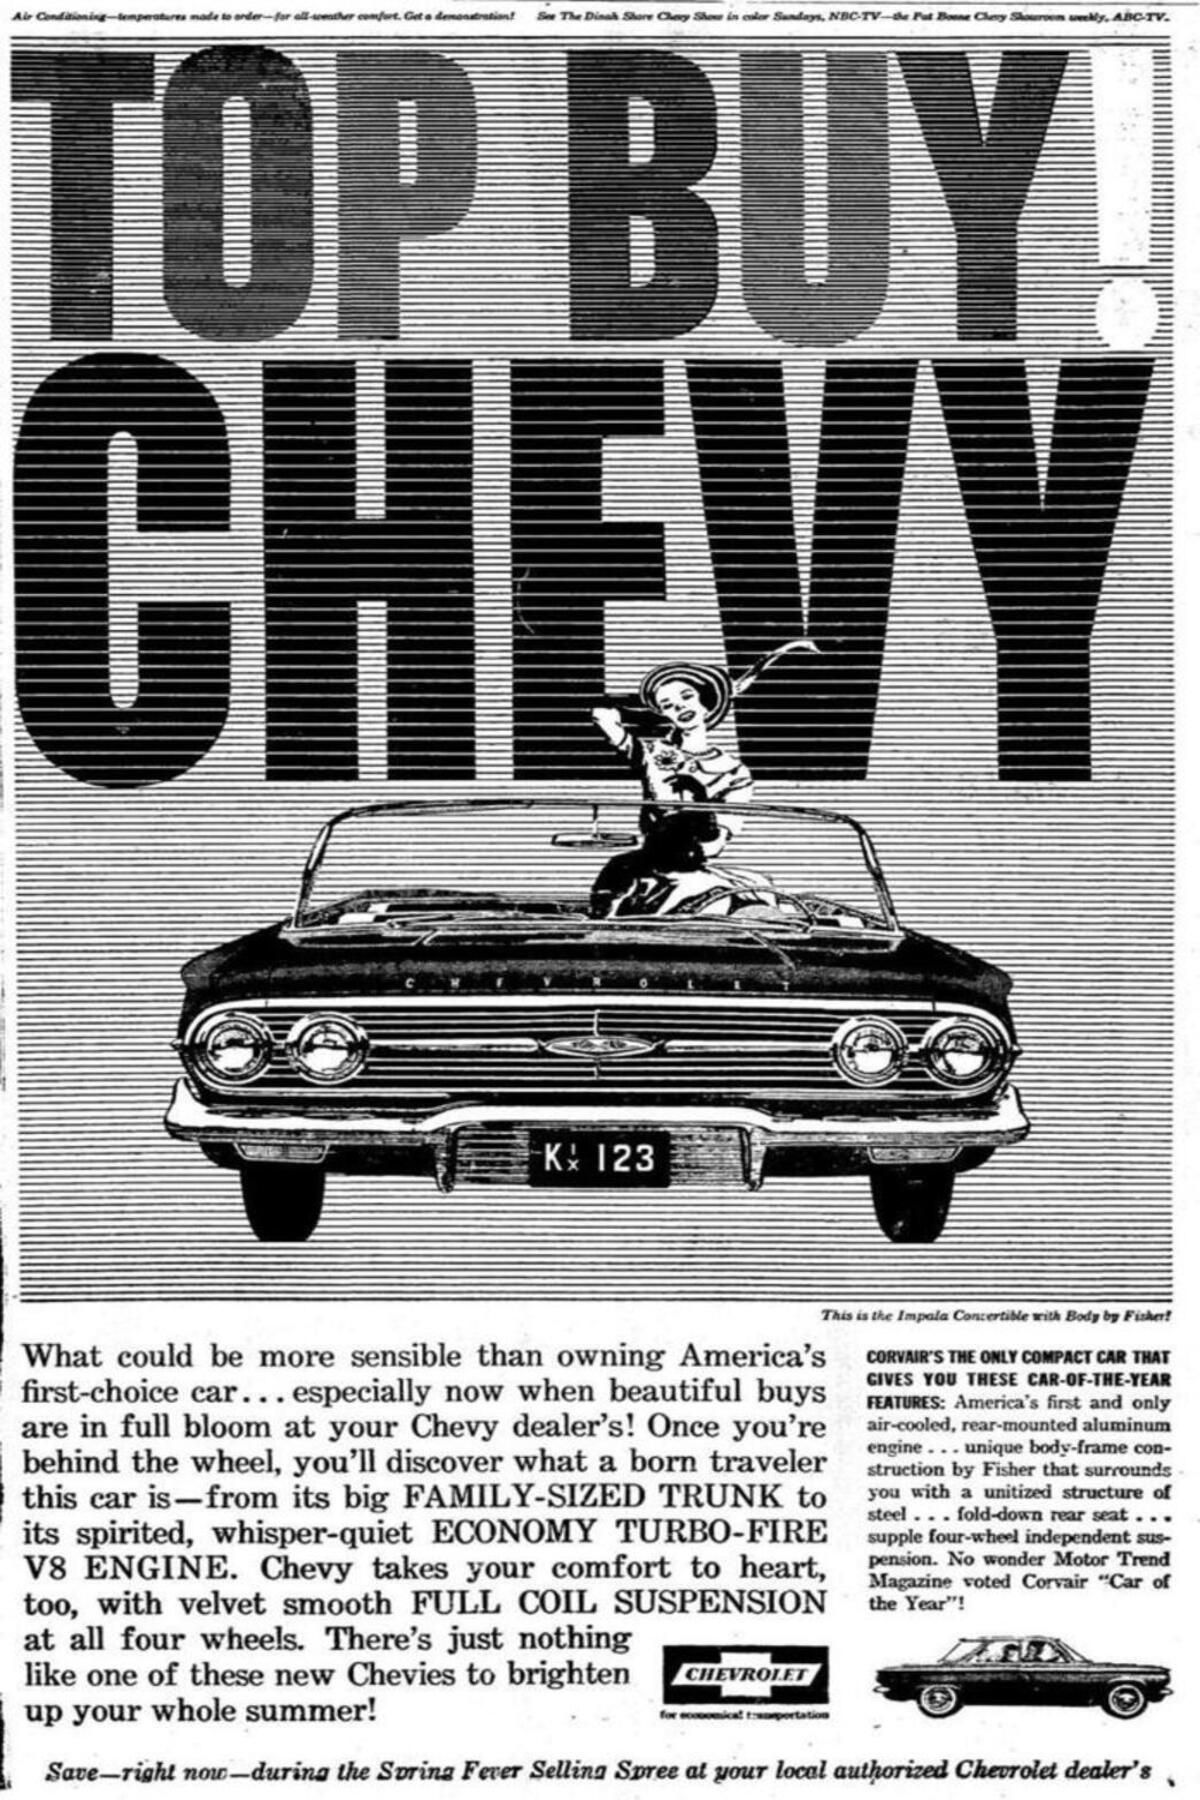 1960 Chevy Impala Convertible Ad In 2020 1960 Chevy Impala James Brown Chevy